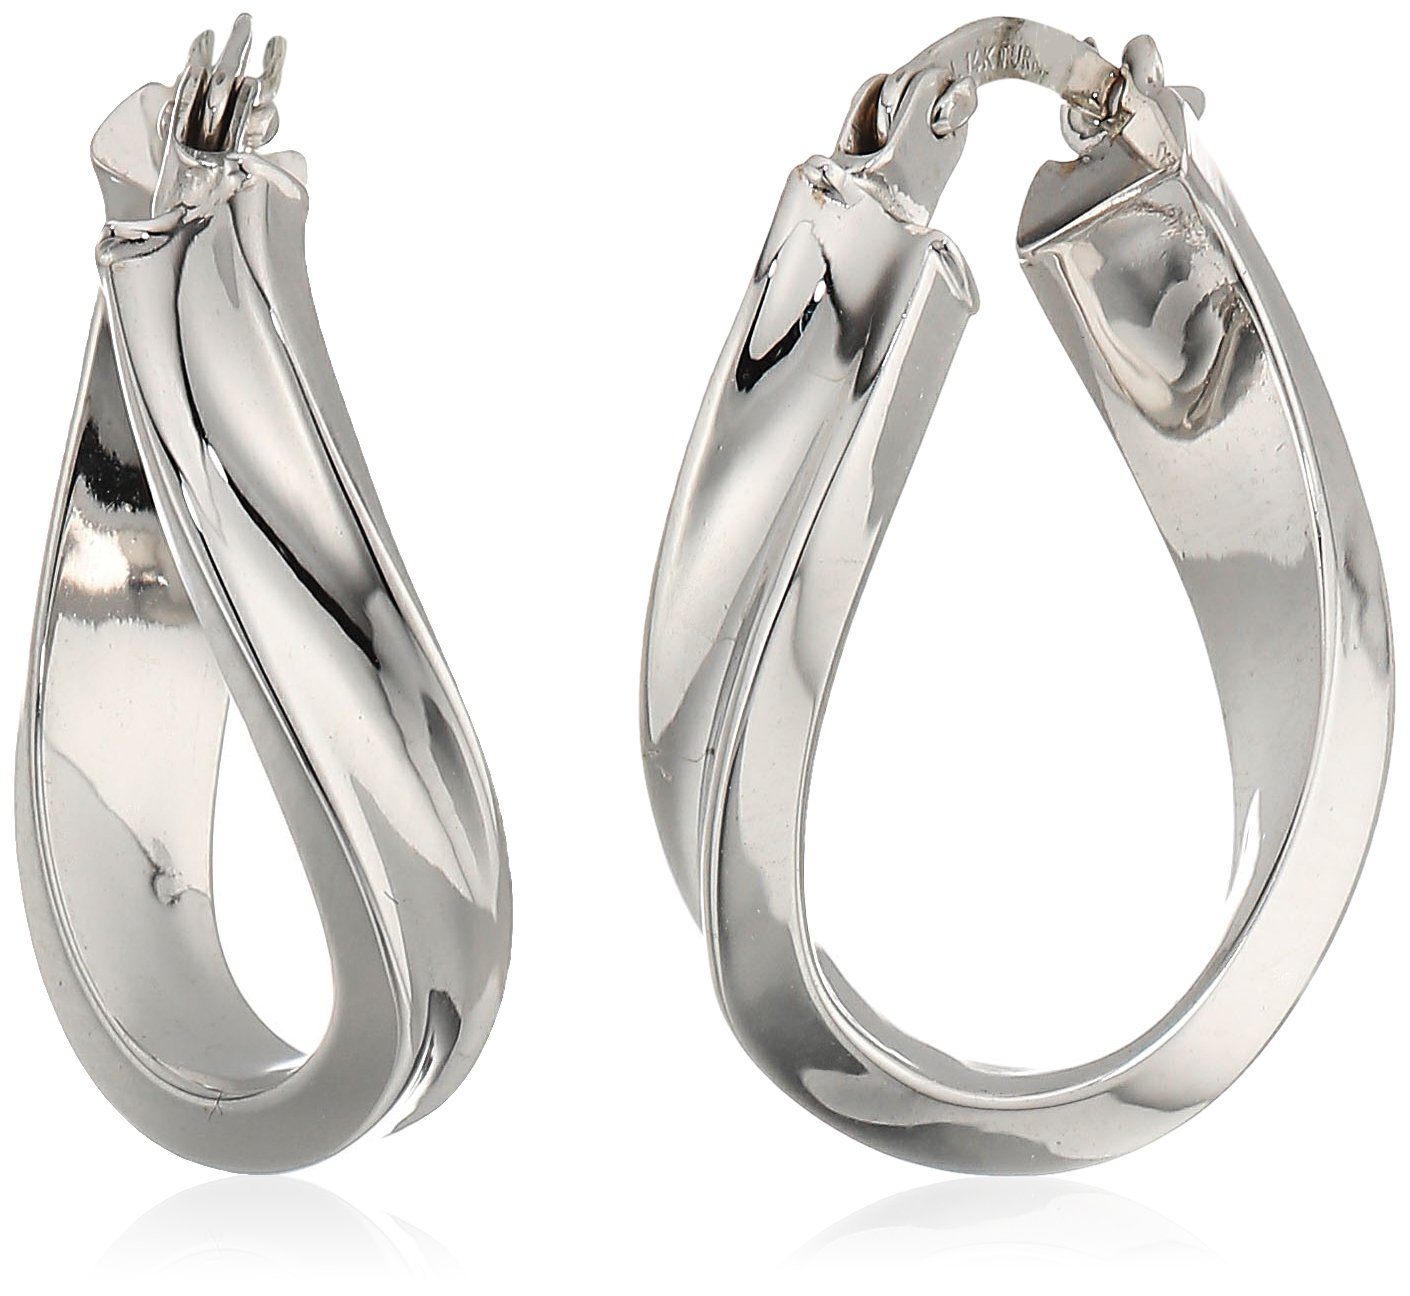 14k white gold wavy hoop earrings